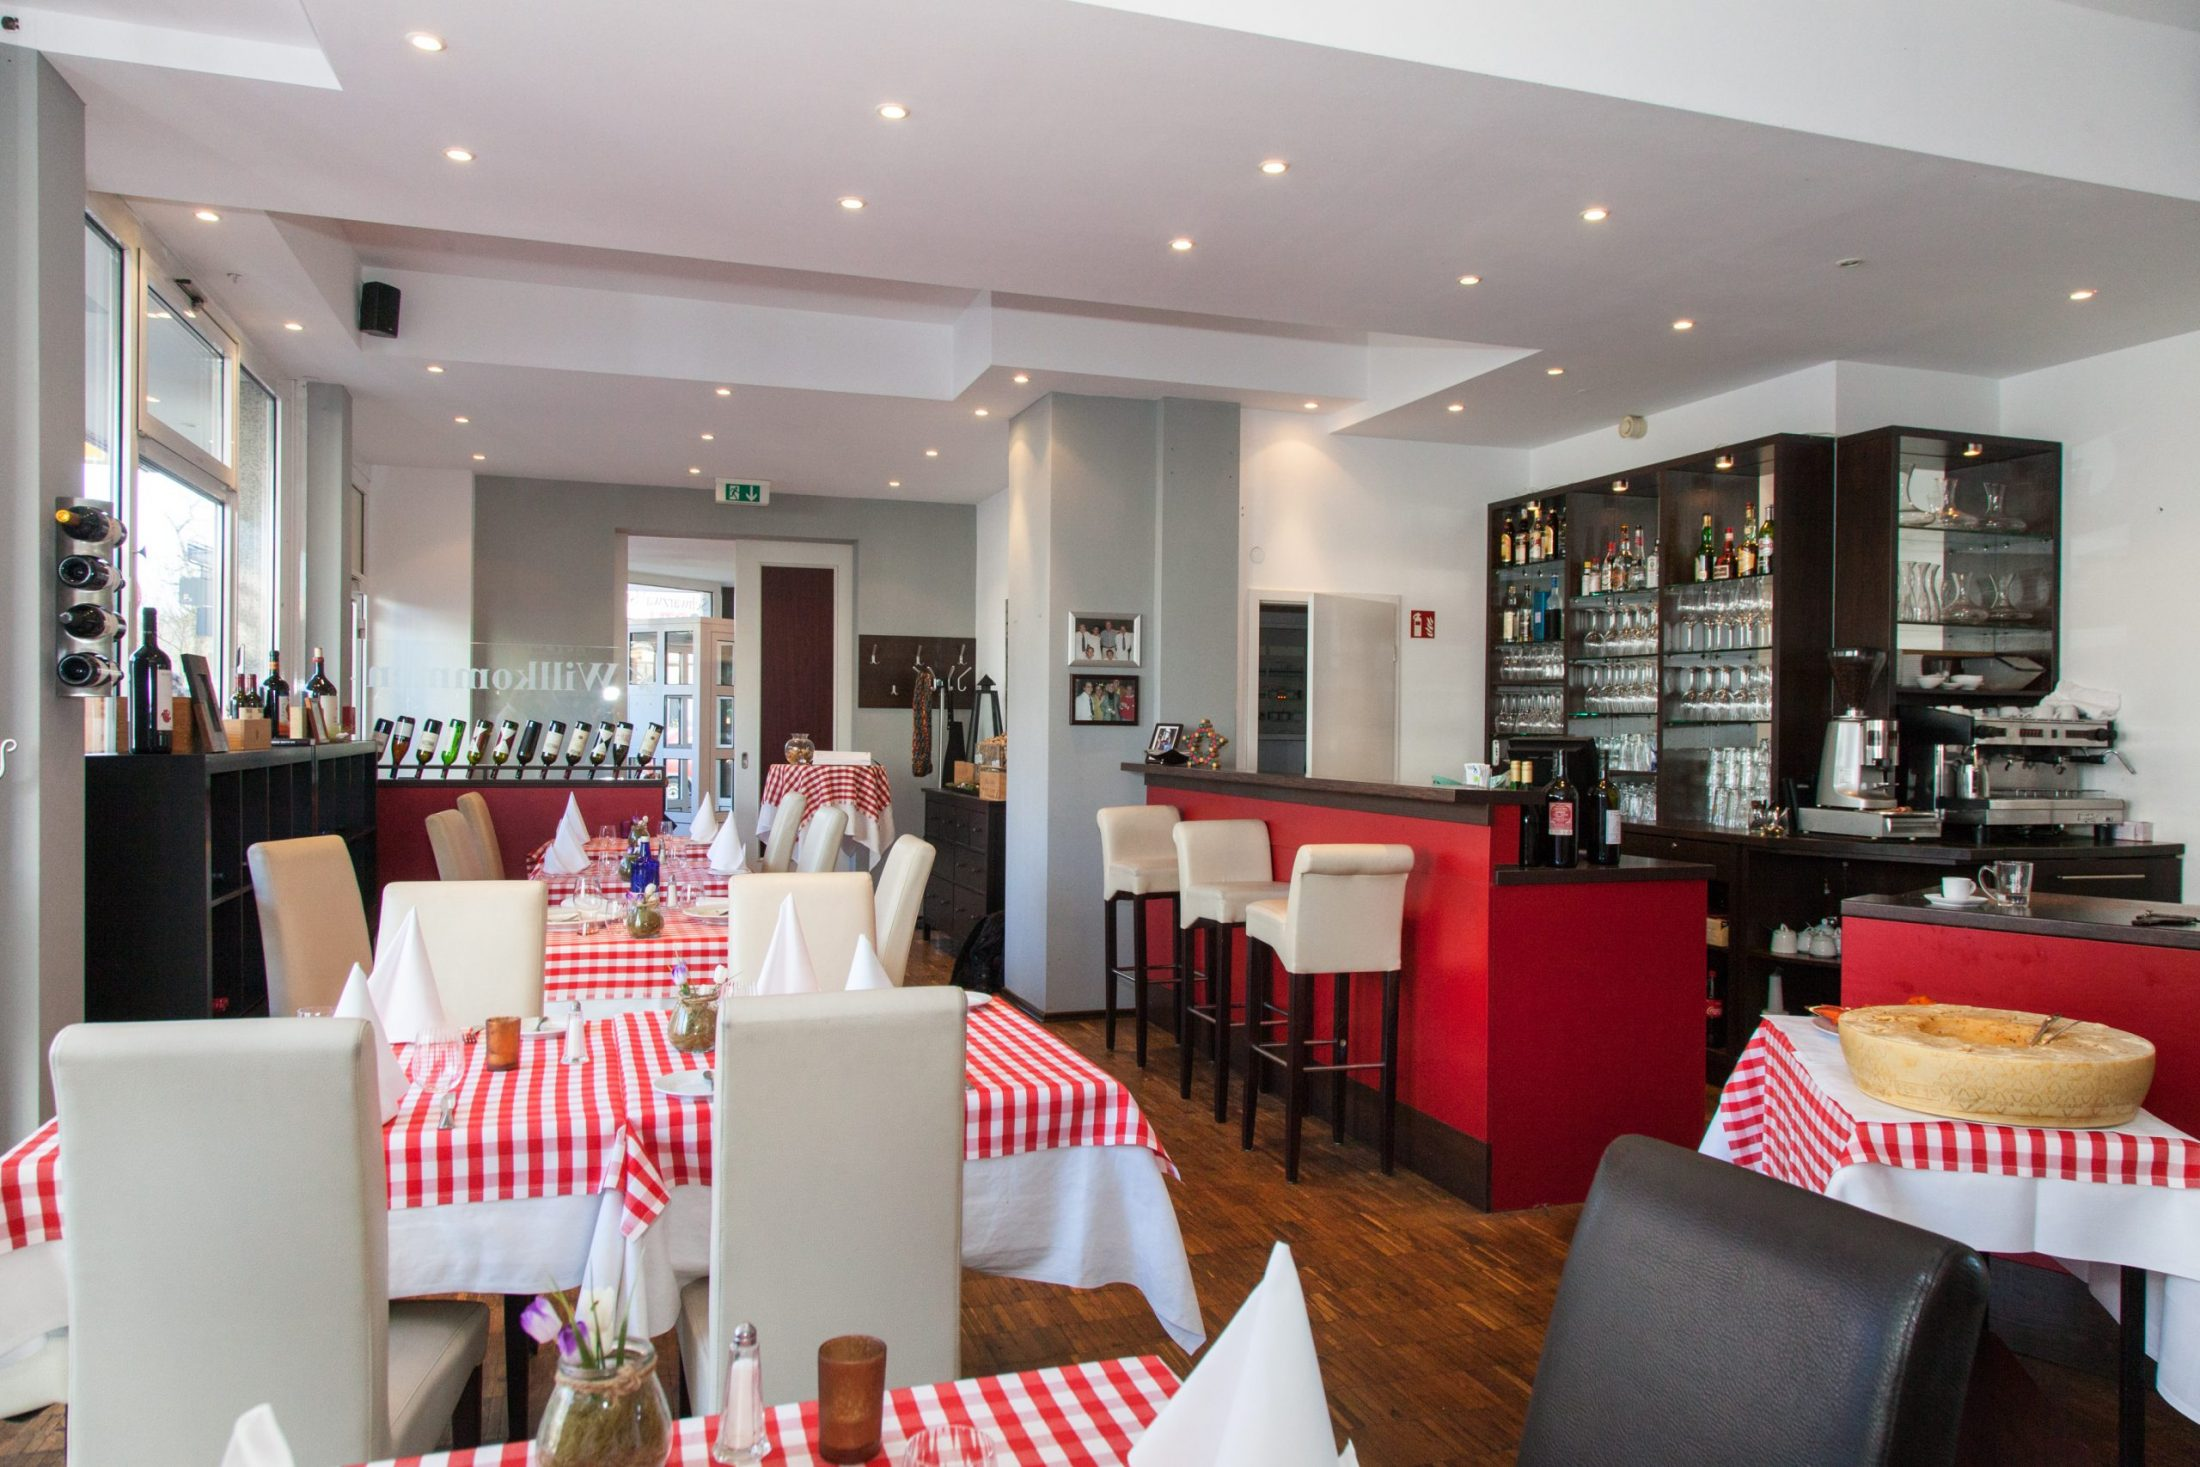 Restaurant Fratellis with delicious food and good wine